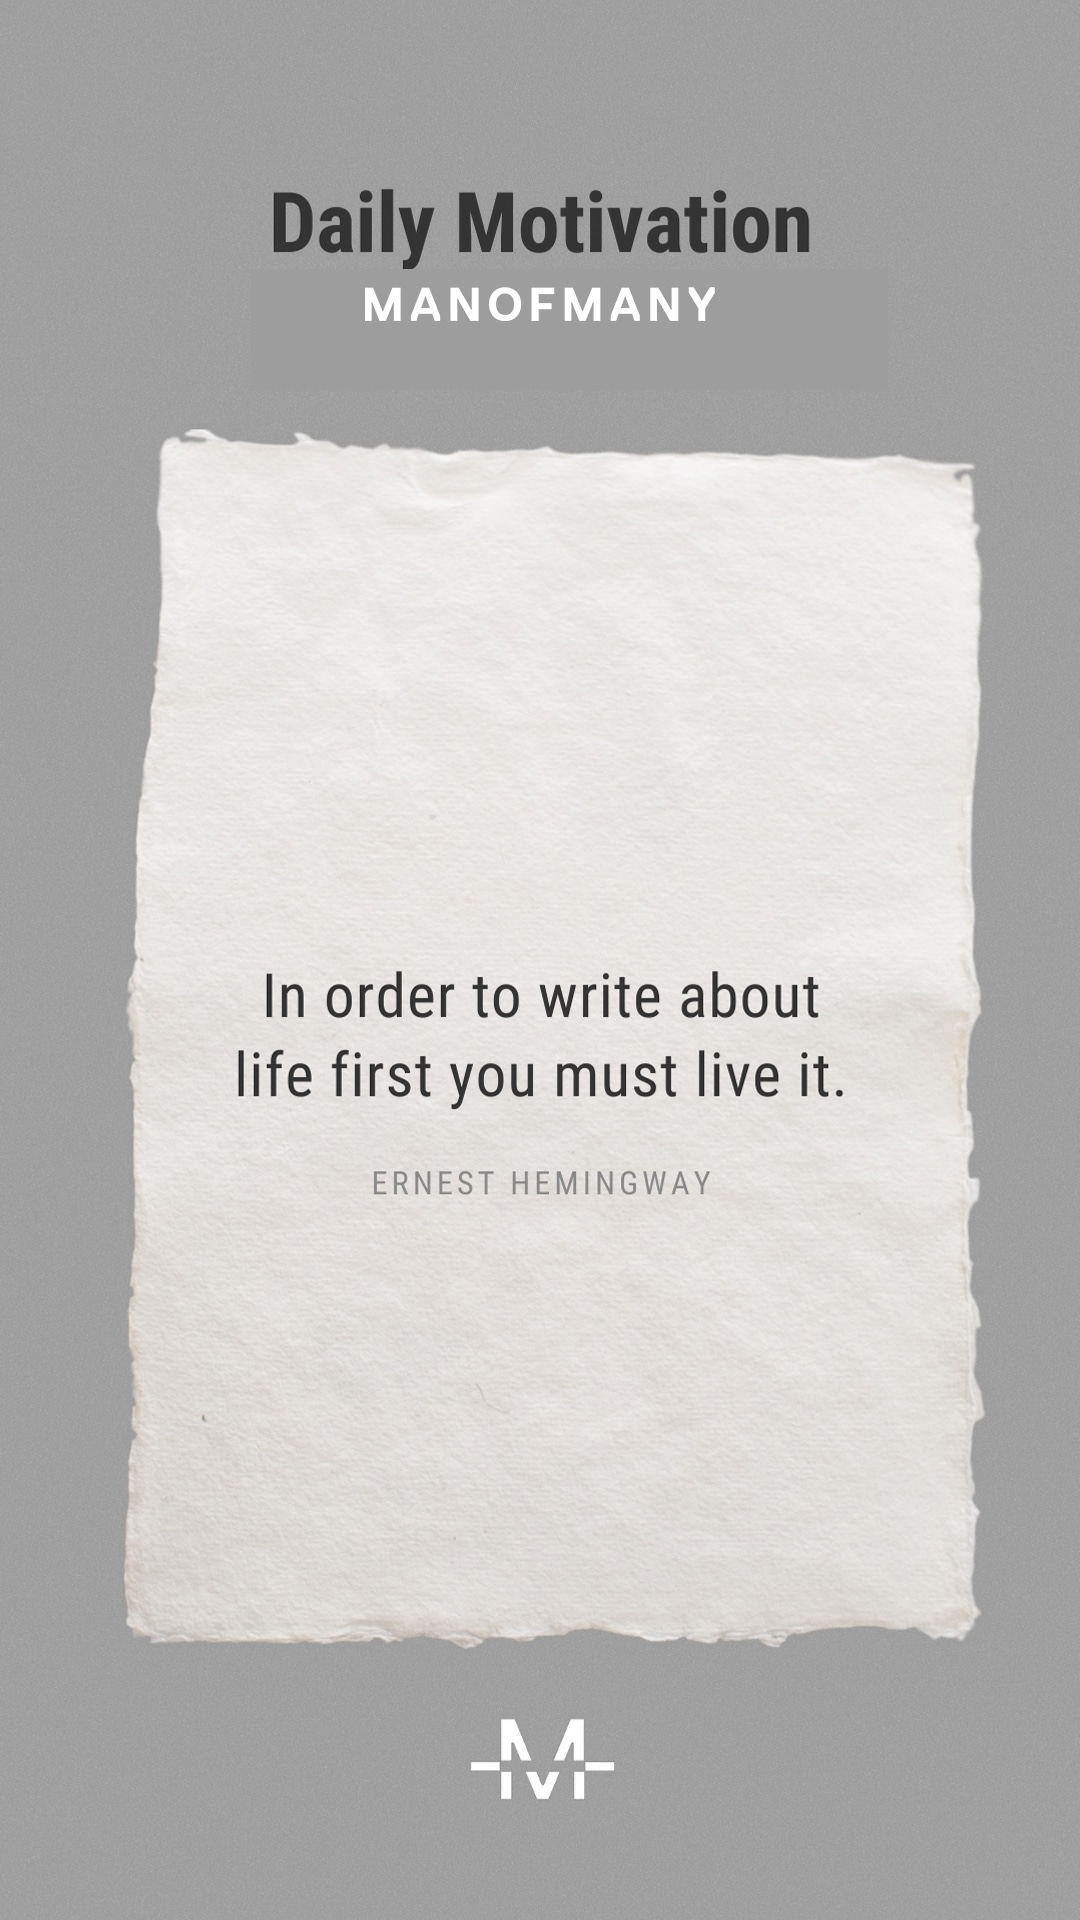 In order to write about life first you must live it.– Ernest Hemingway quote